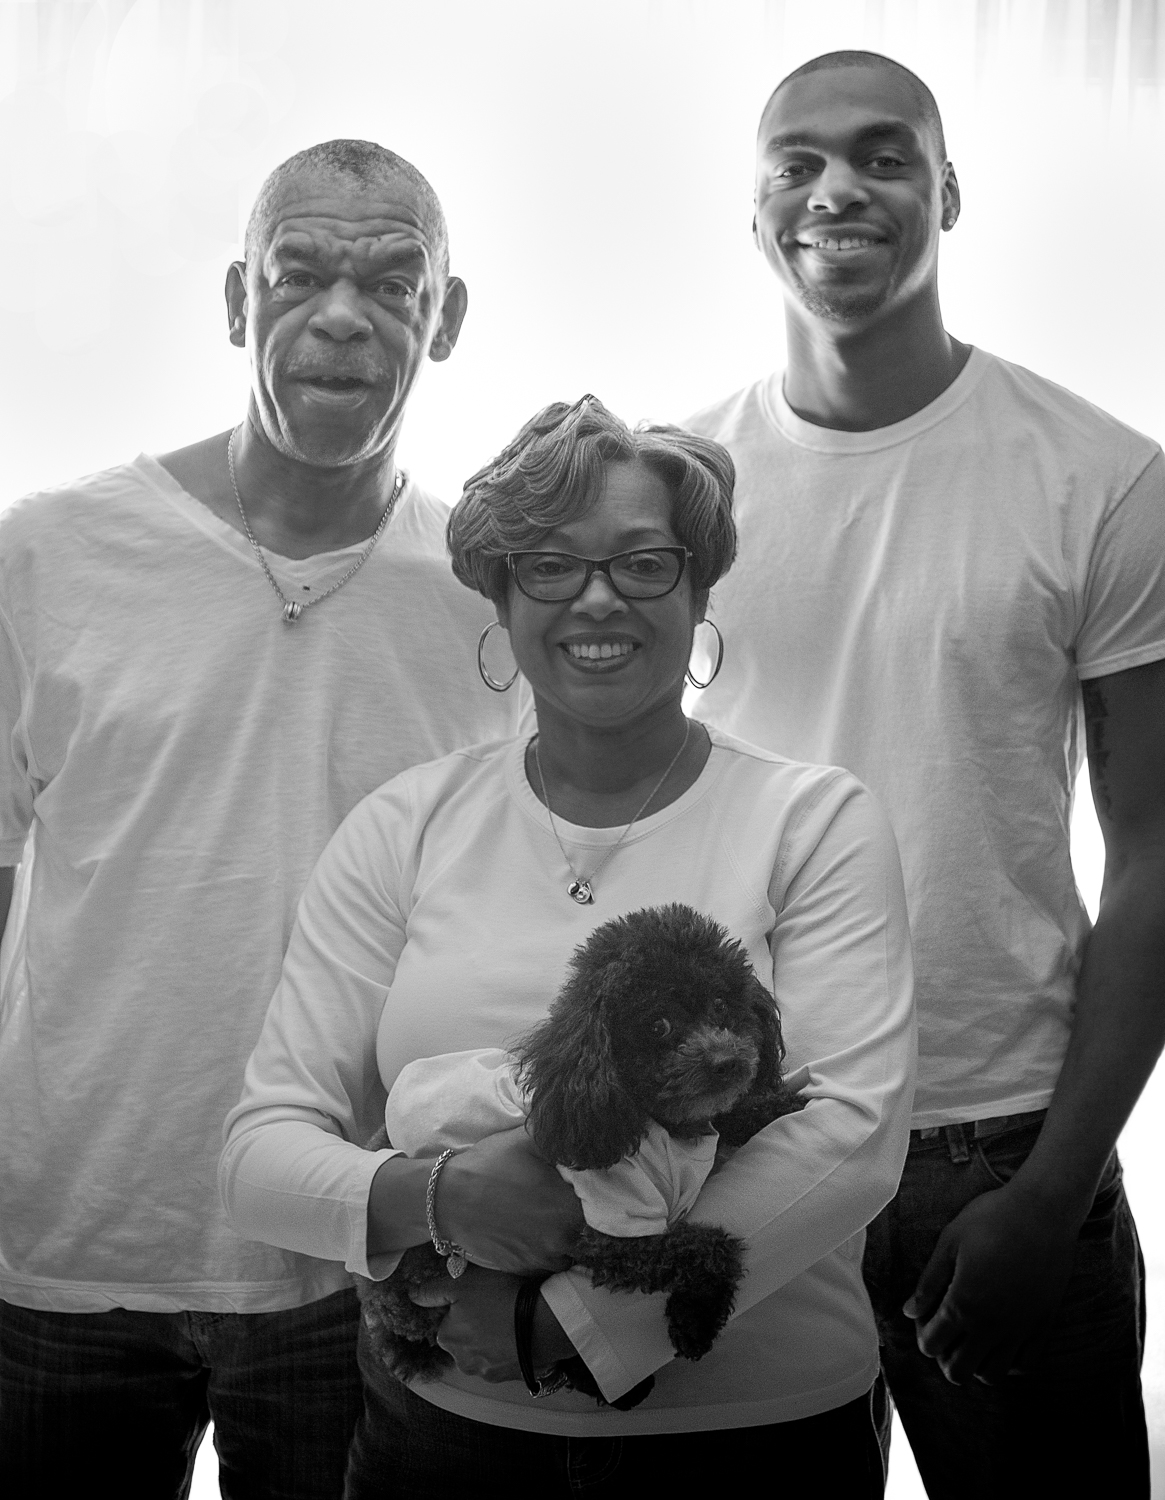 Family_Photography_Laura_Suprenant_Photography-1.jpg